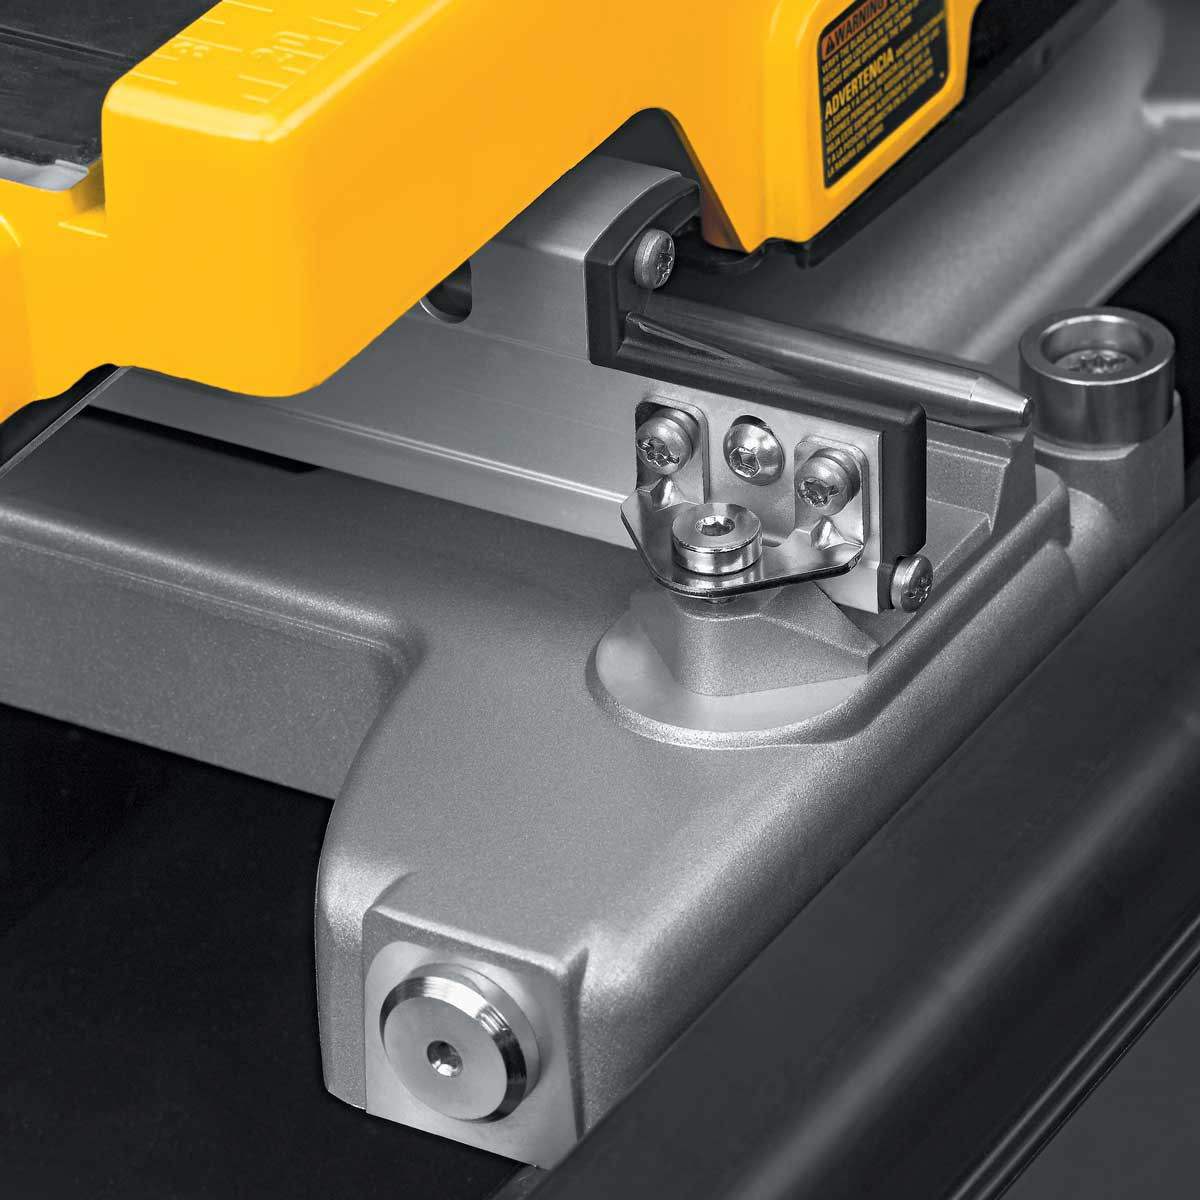 dewalt d24000 tile saw tray stop